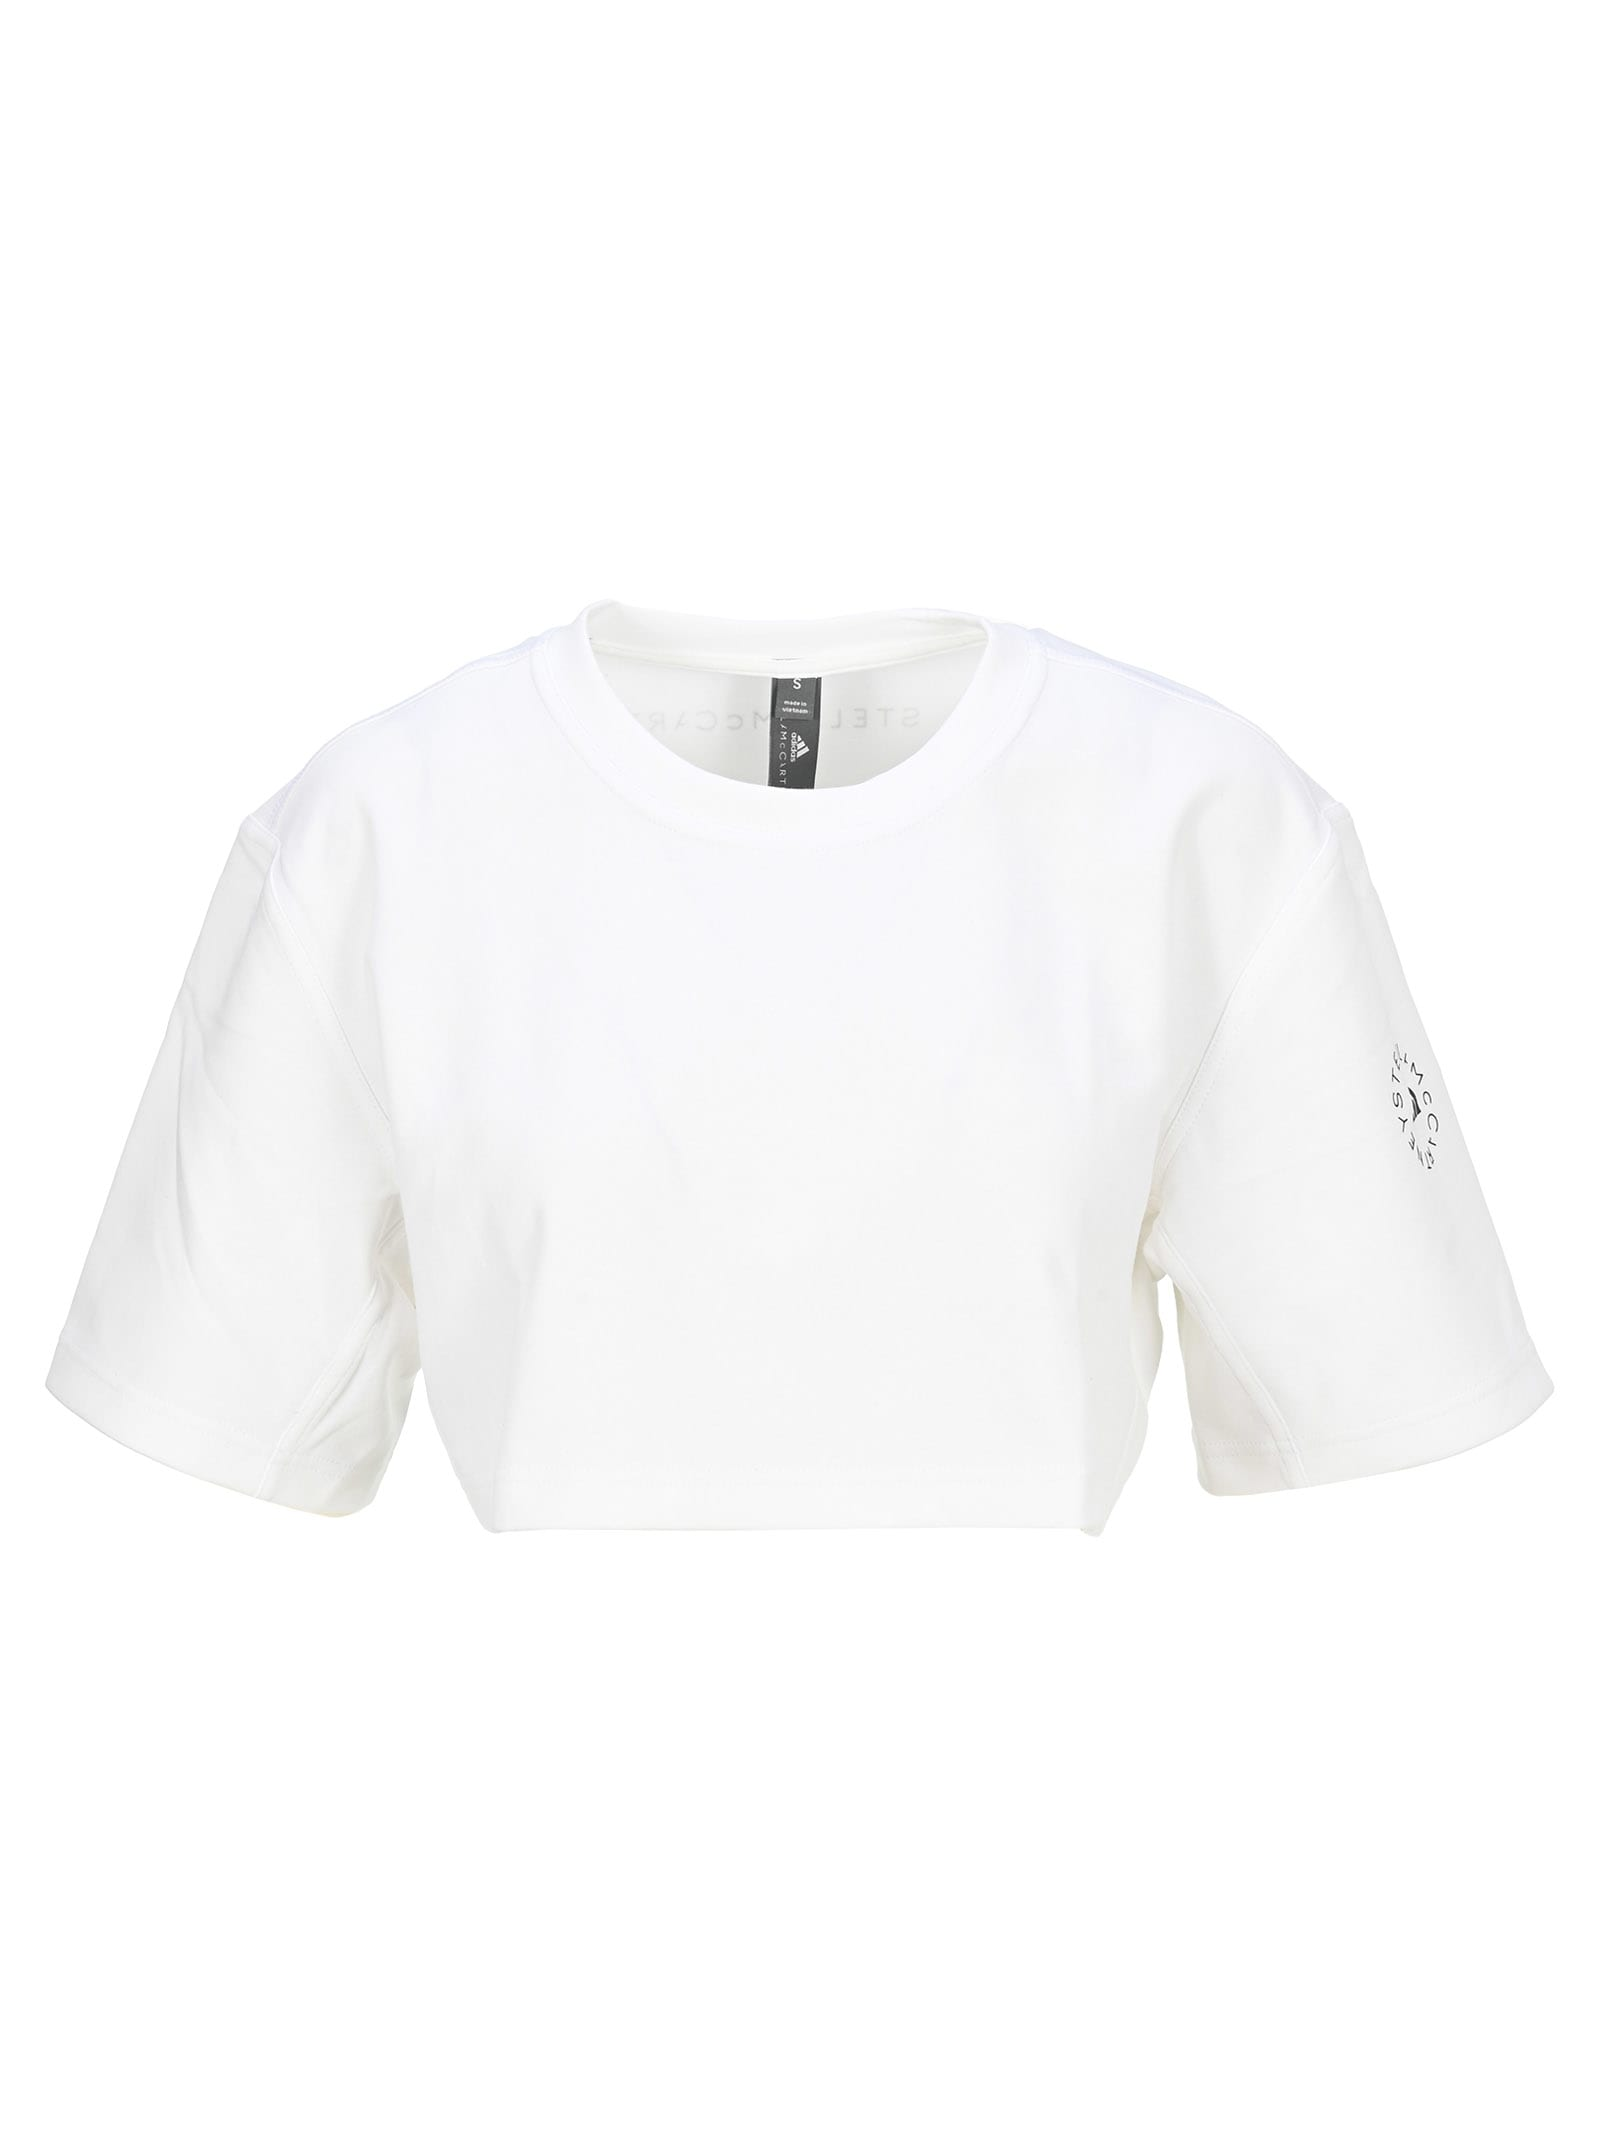 Adidas By Stella Mccartney ADIDAS BY STELLA MCCARTNEY TSHIRT CROP